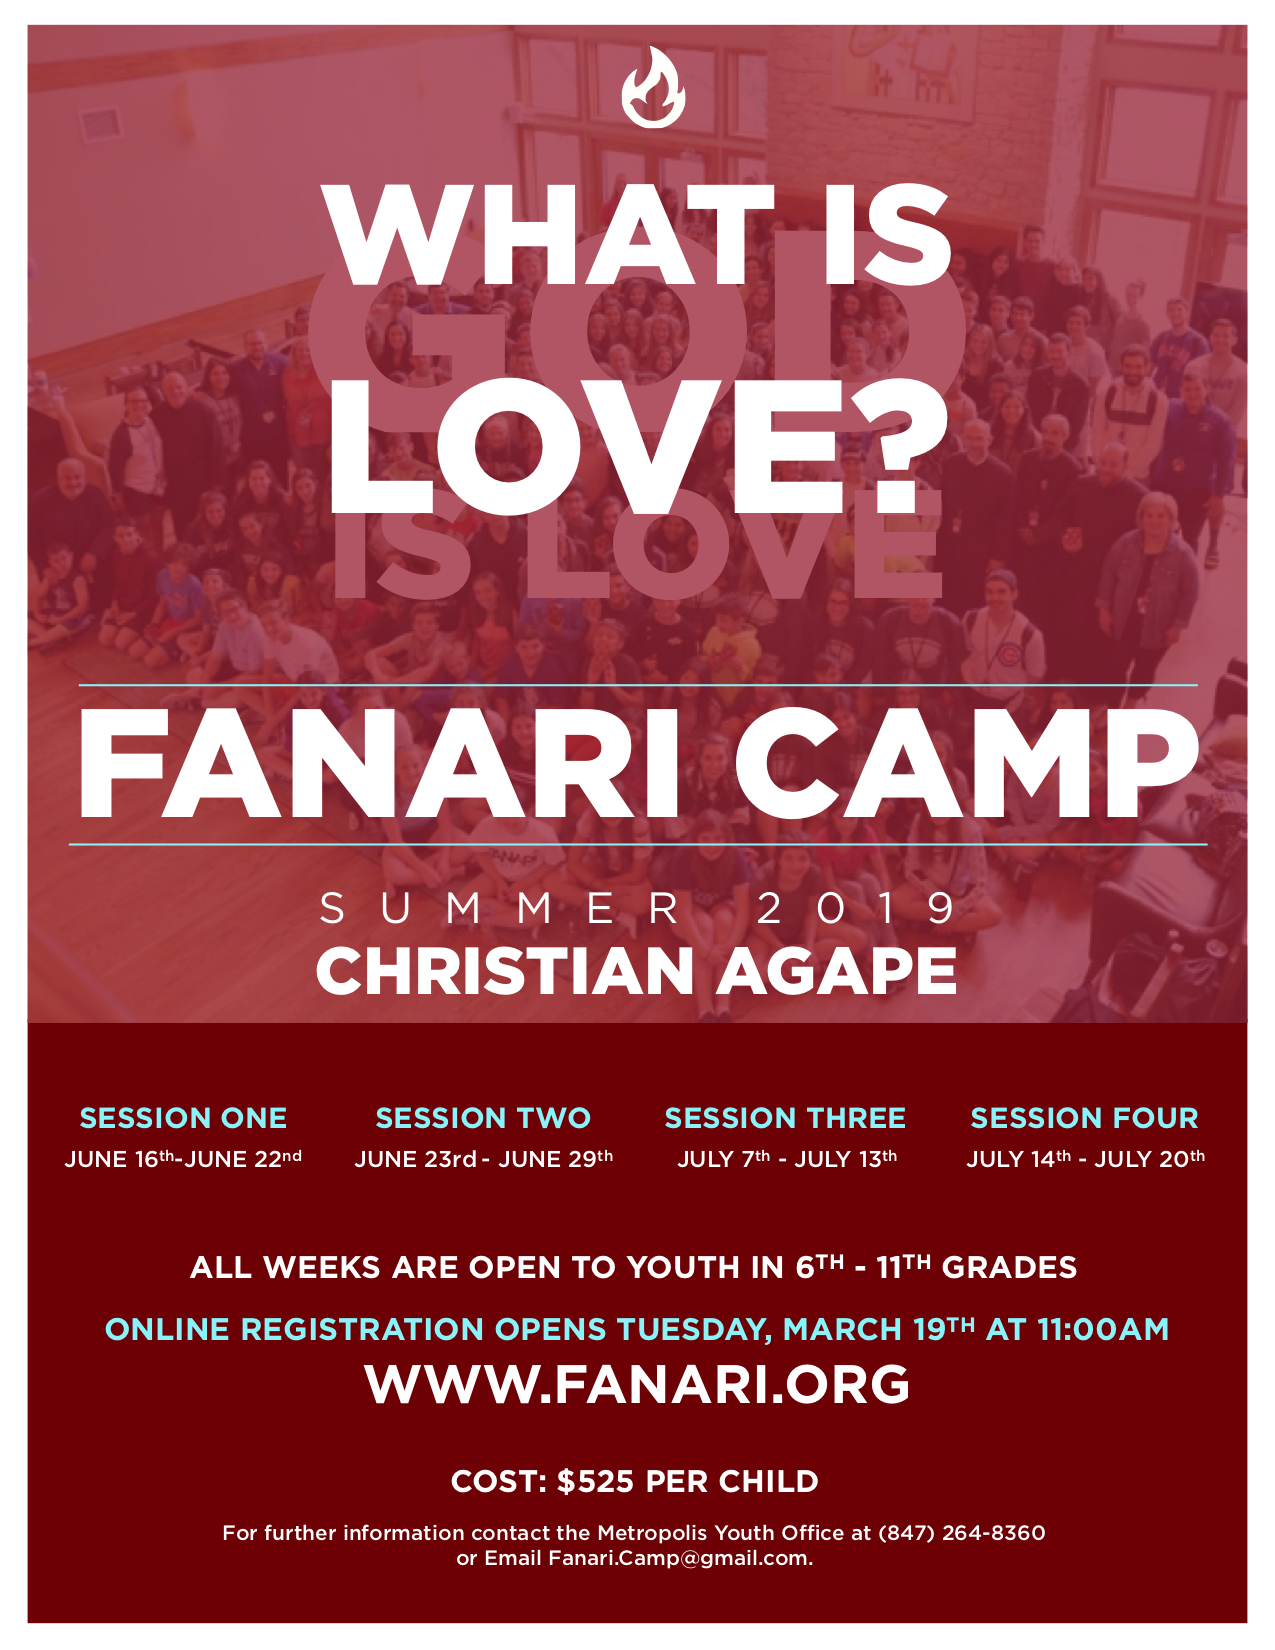 7a13b690c1f Questions about registration   email fanari.camp gmail.com